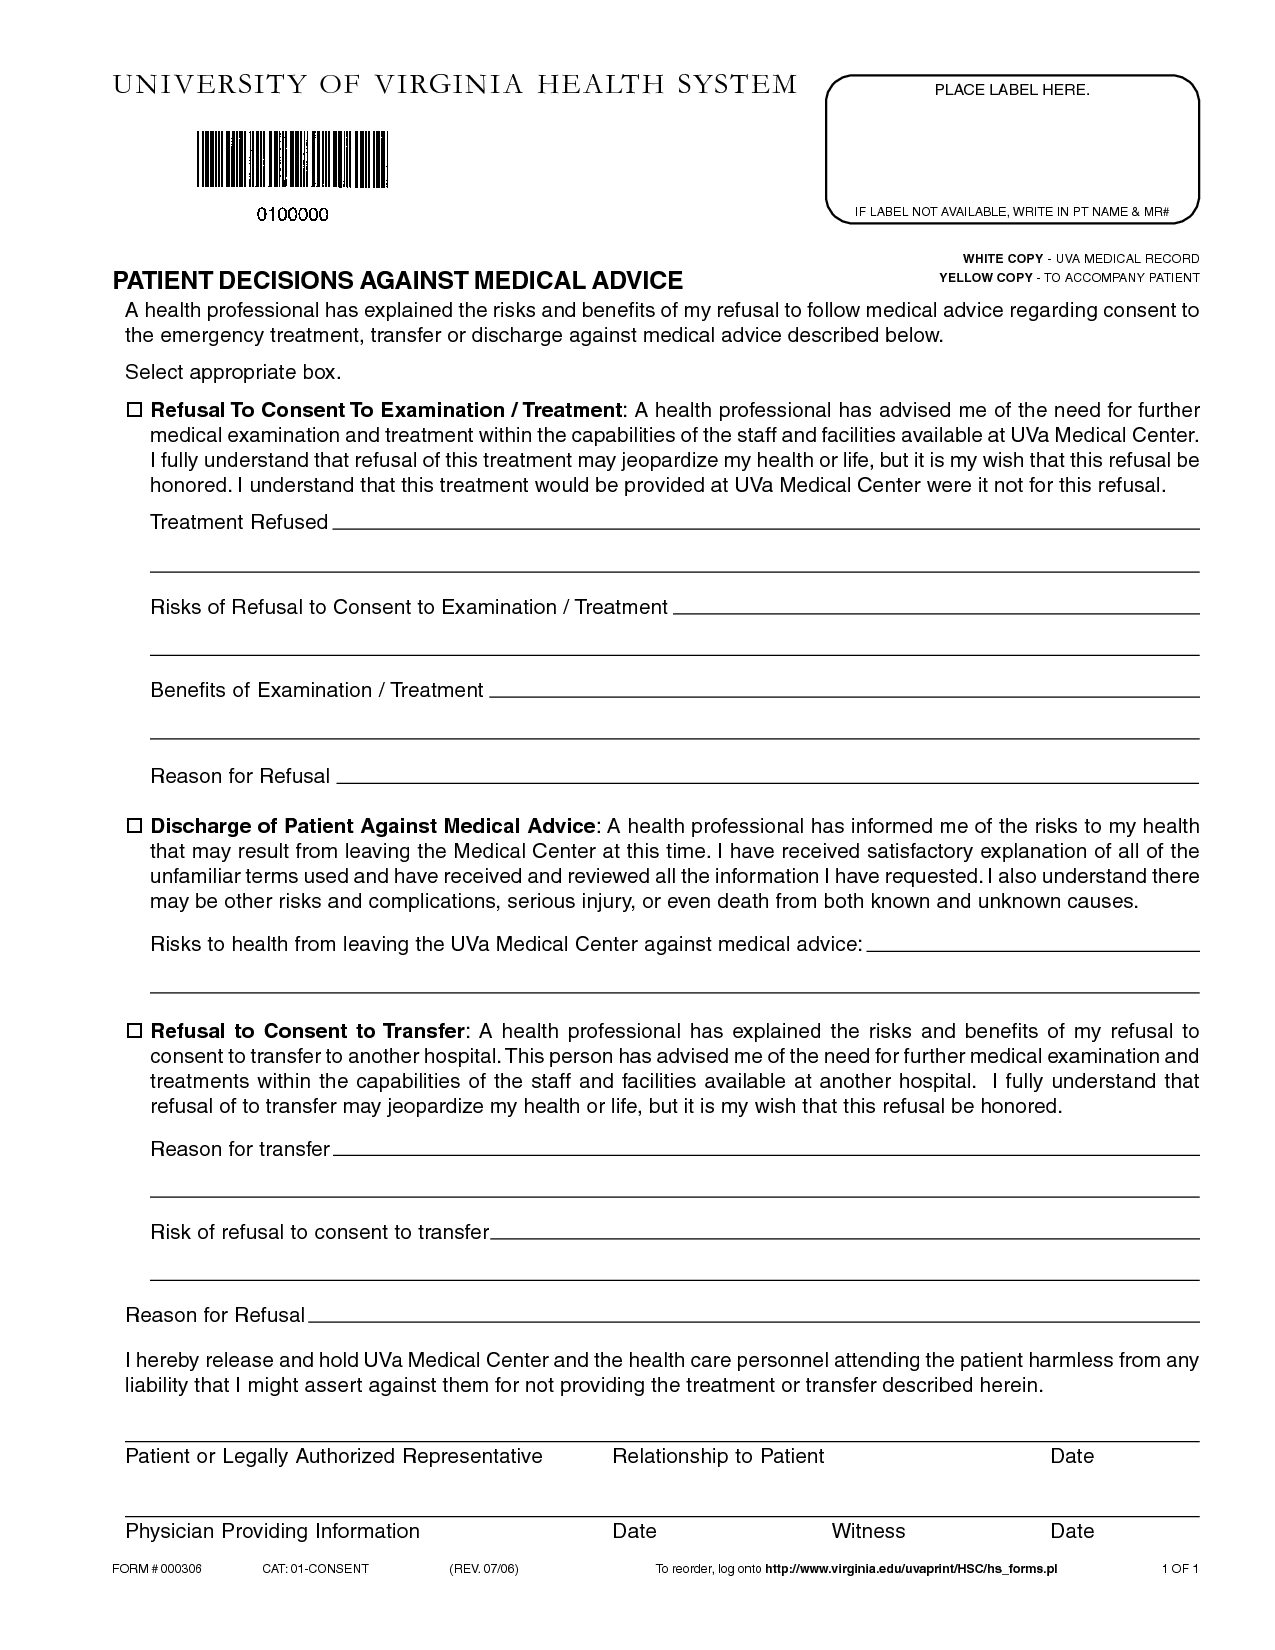 Blank+Printable+Hospital+Discharge+Forms | Doctors Note within Form I-9 2021 Printable